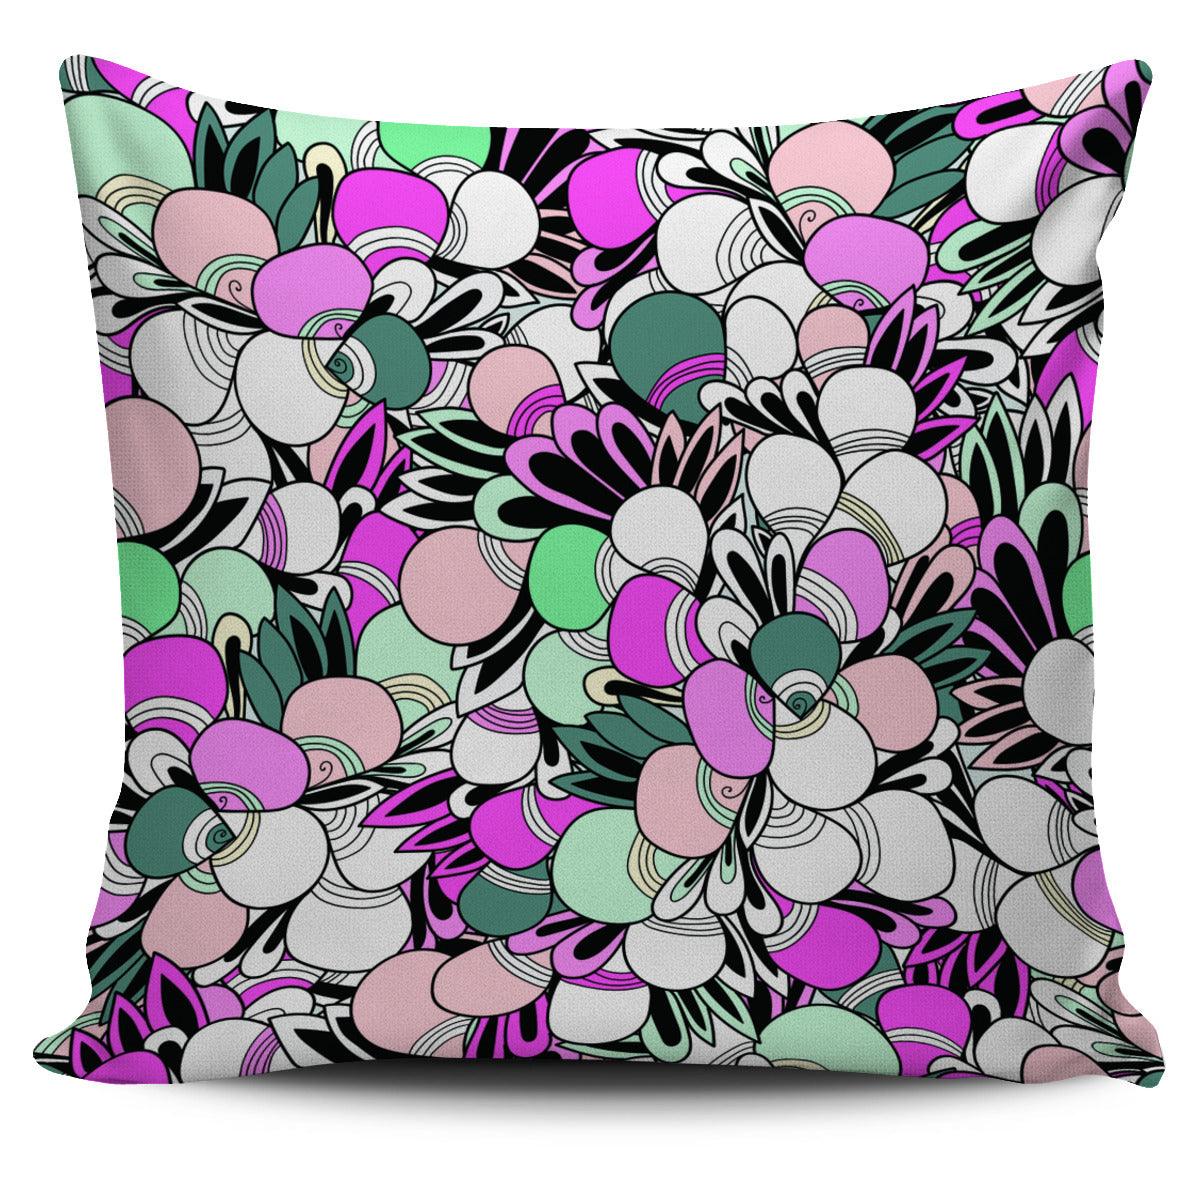 Funky Patterns in Candy - Single Sided Pillow Cover